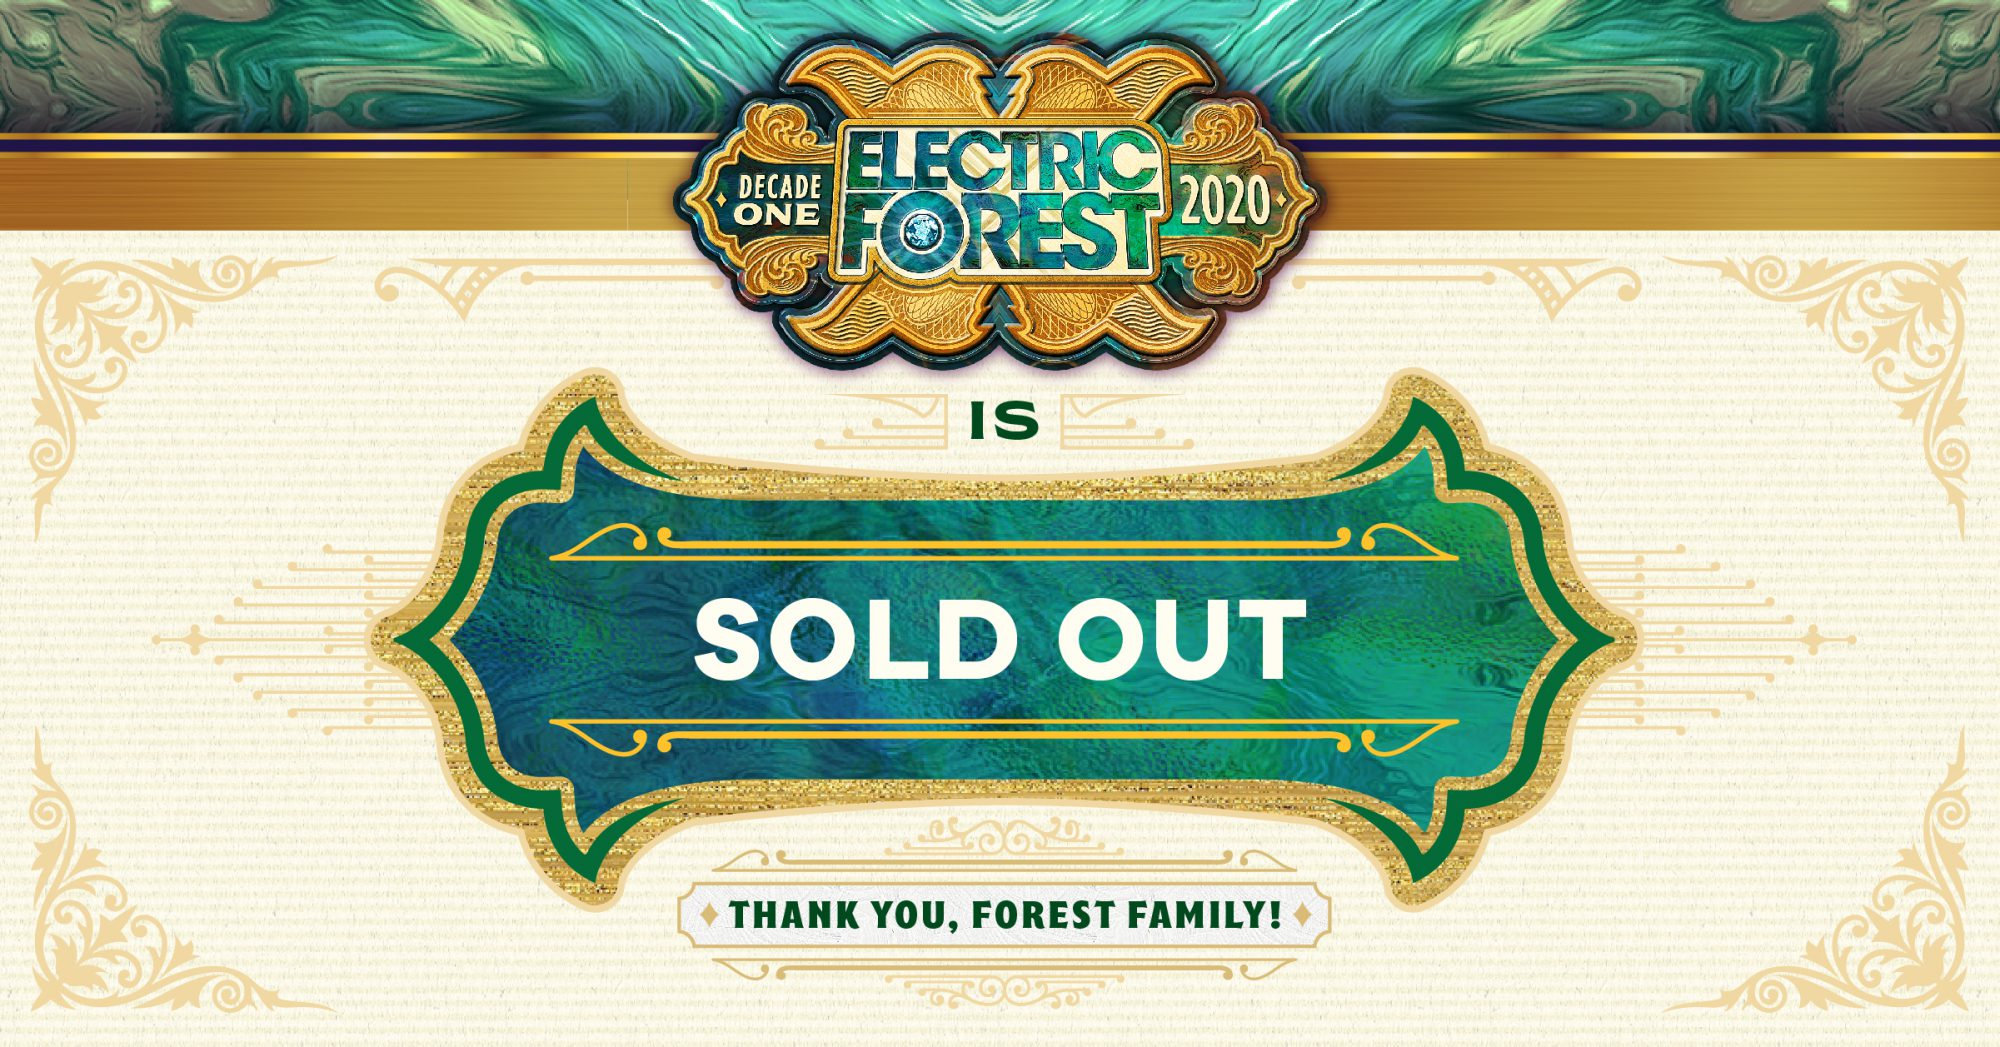 Electric Forest 2020 Sold Out